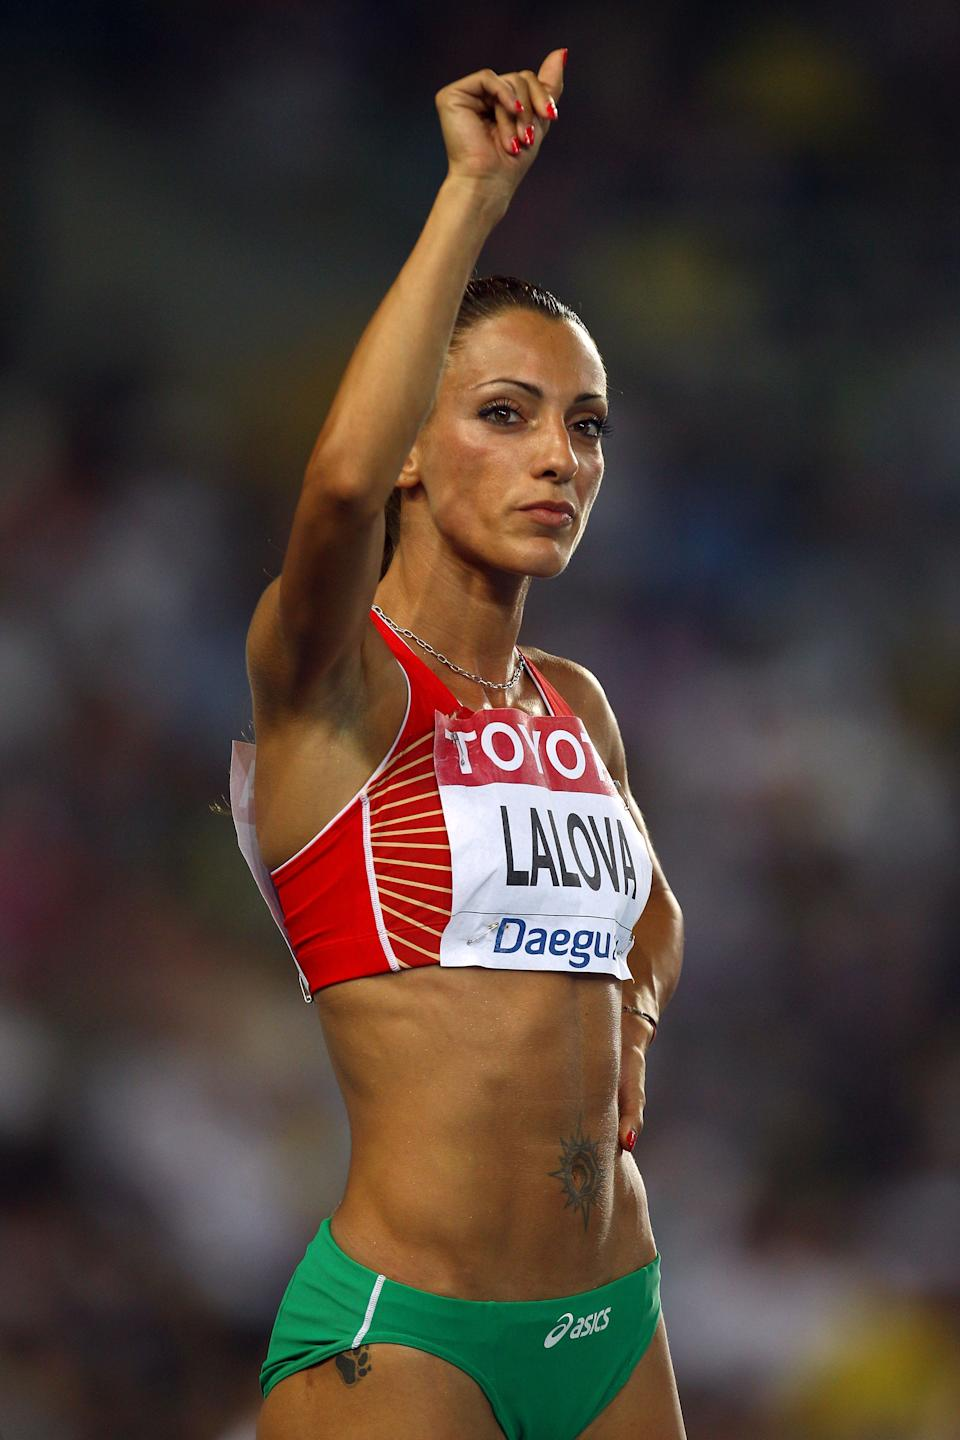 Ivet Lalova of Bulgaria has recently been named the new Olympic crush of the London Games. The 28-year-old has made a name for herself as a phenom on the track. (Alexander Hassenstein/Bongarts/Getty Images)